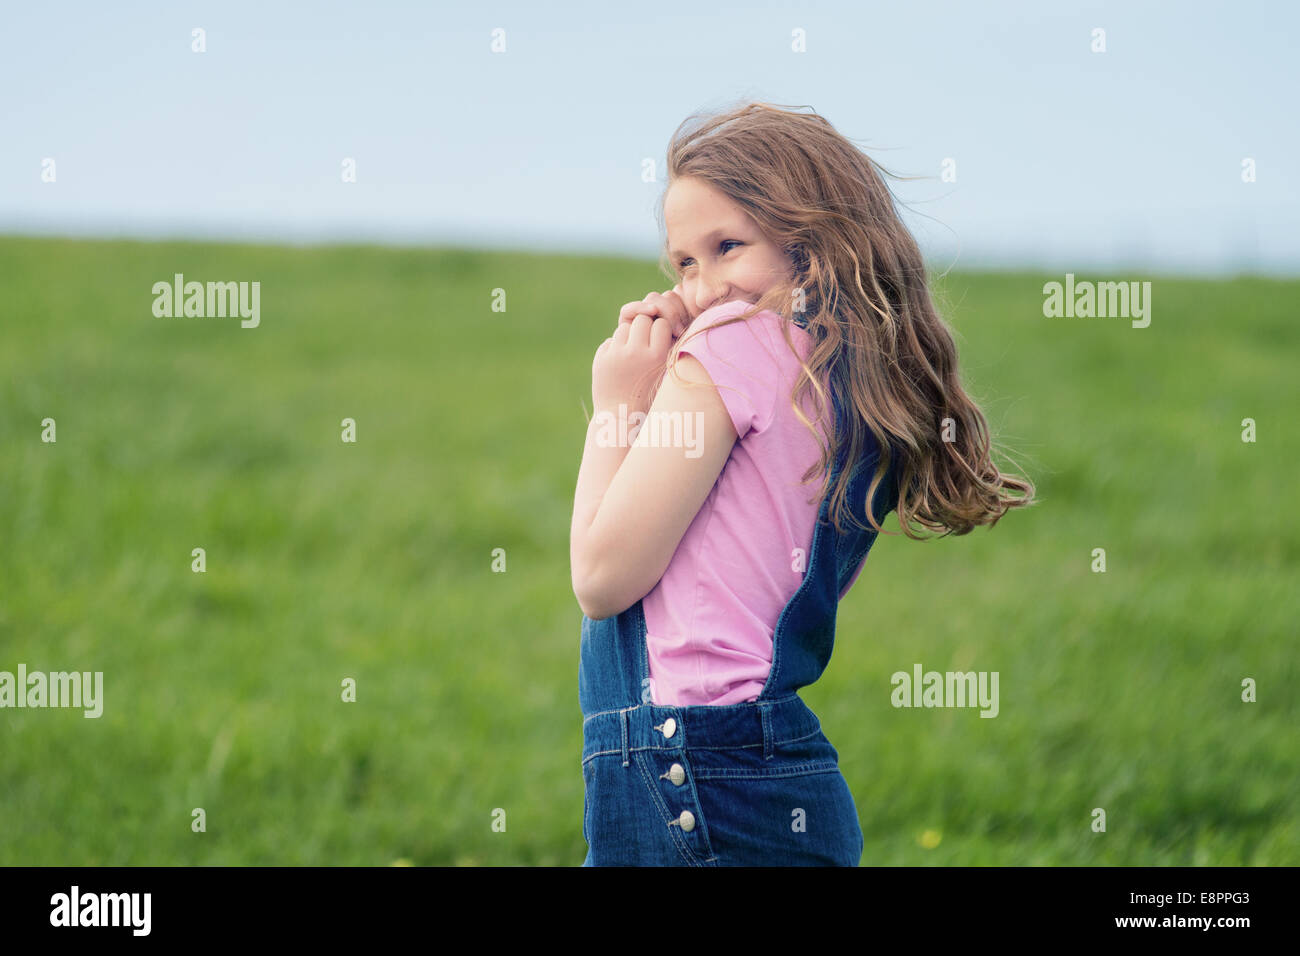 happy laughing girl in a field, wearing denim and pink - Stock Image